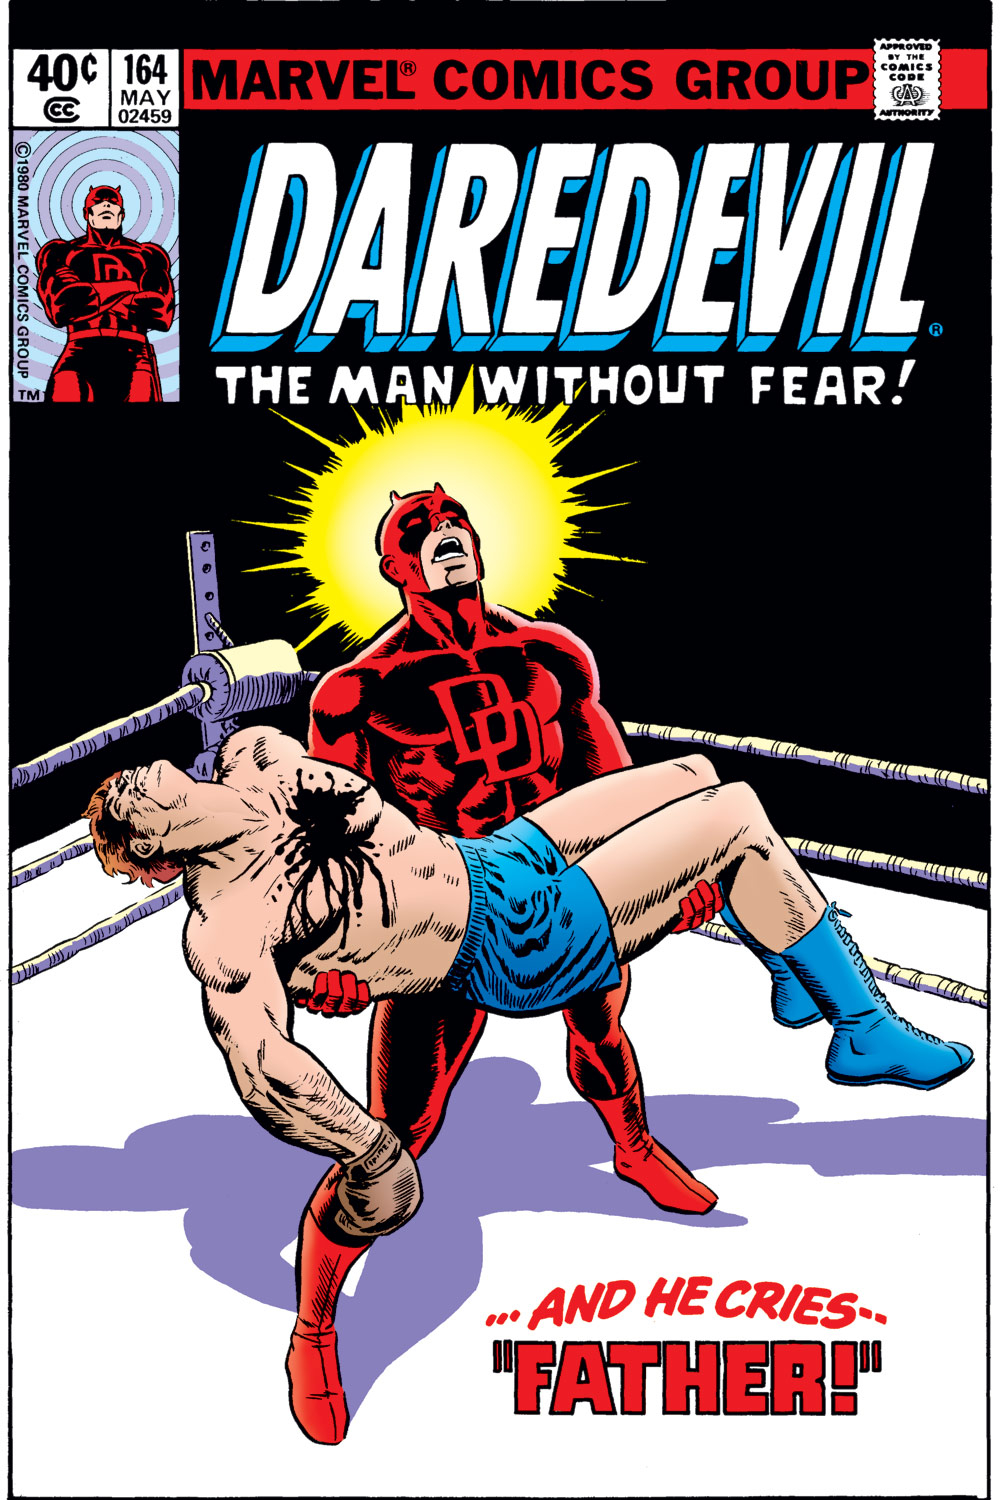 Daredevil (1963-1998) issue 164 - Page 1